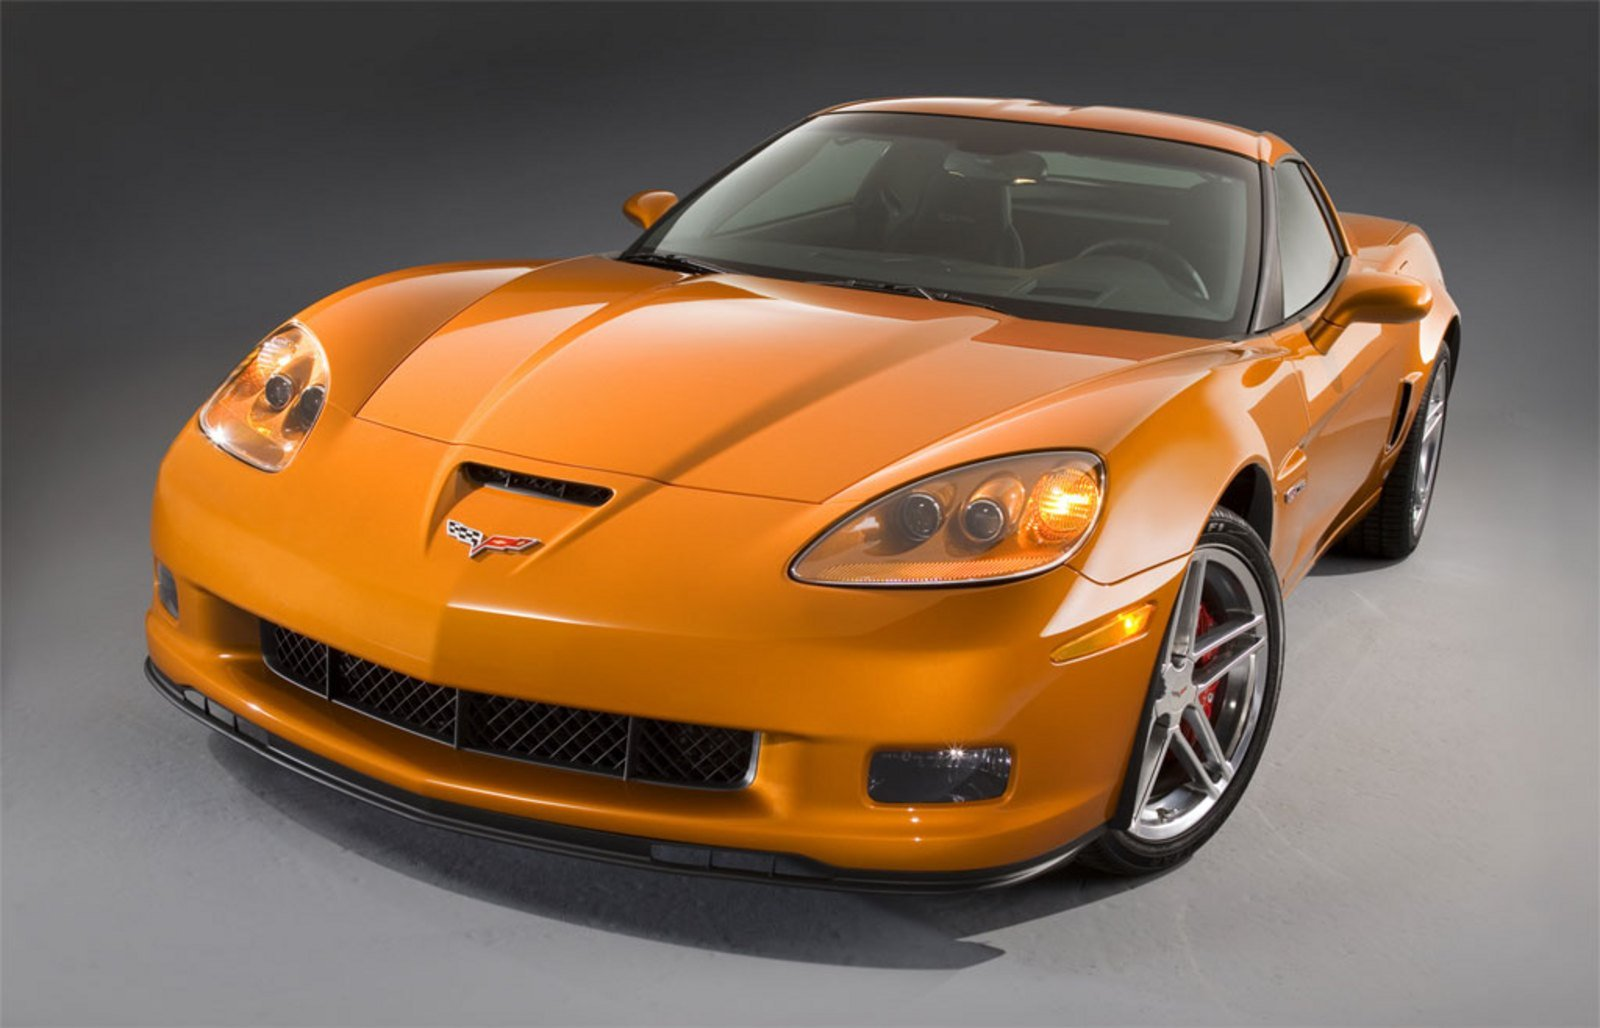 2007 Chevrolet Corvette Z06 Review - Top Speed